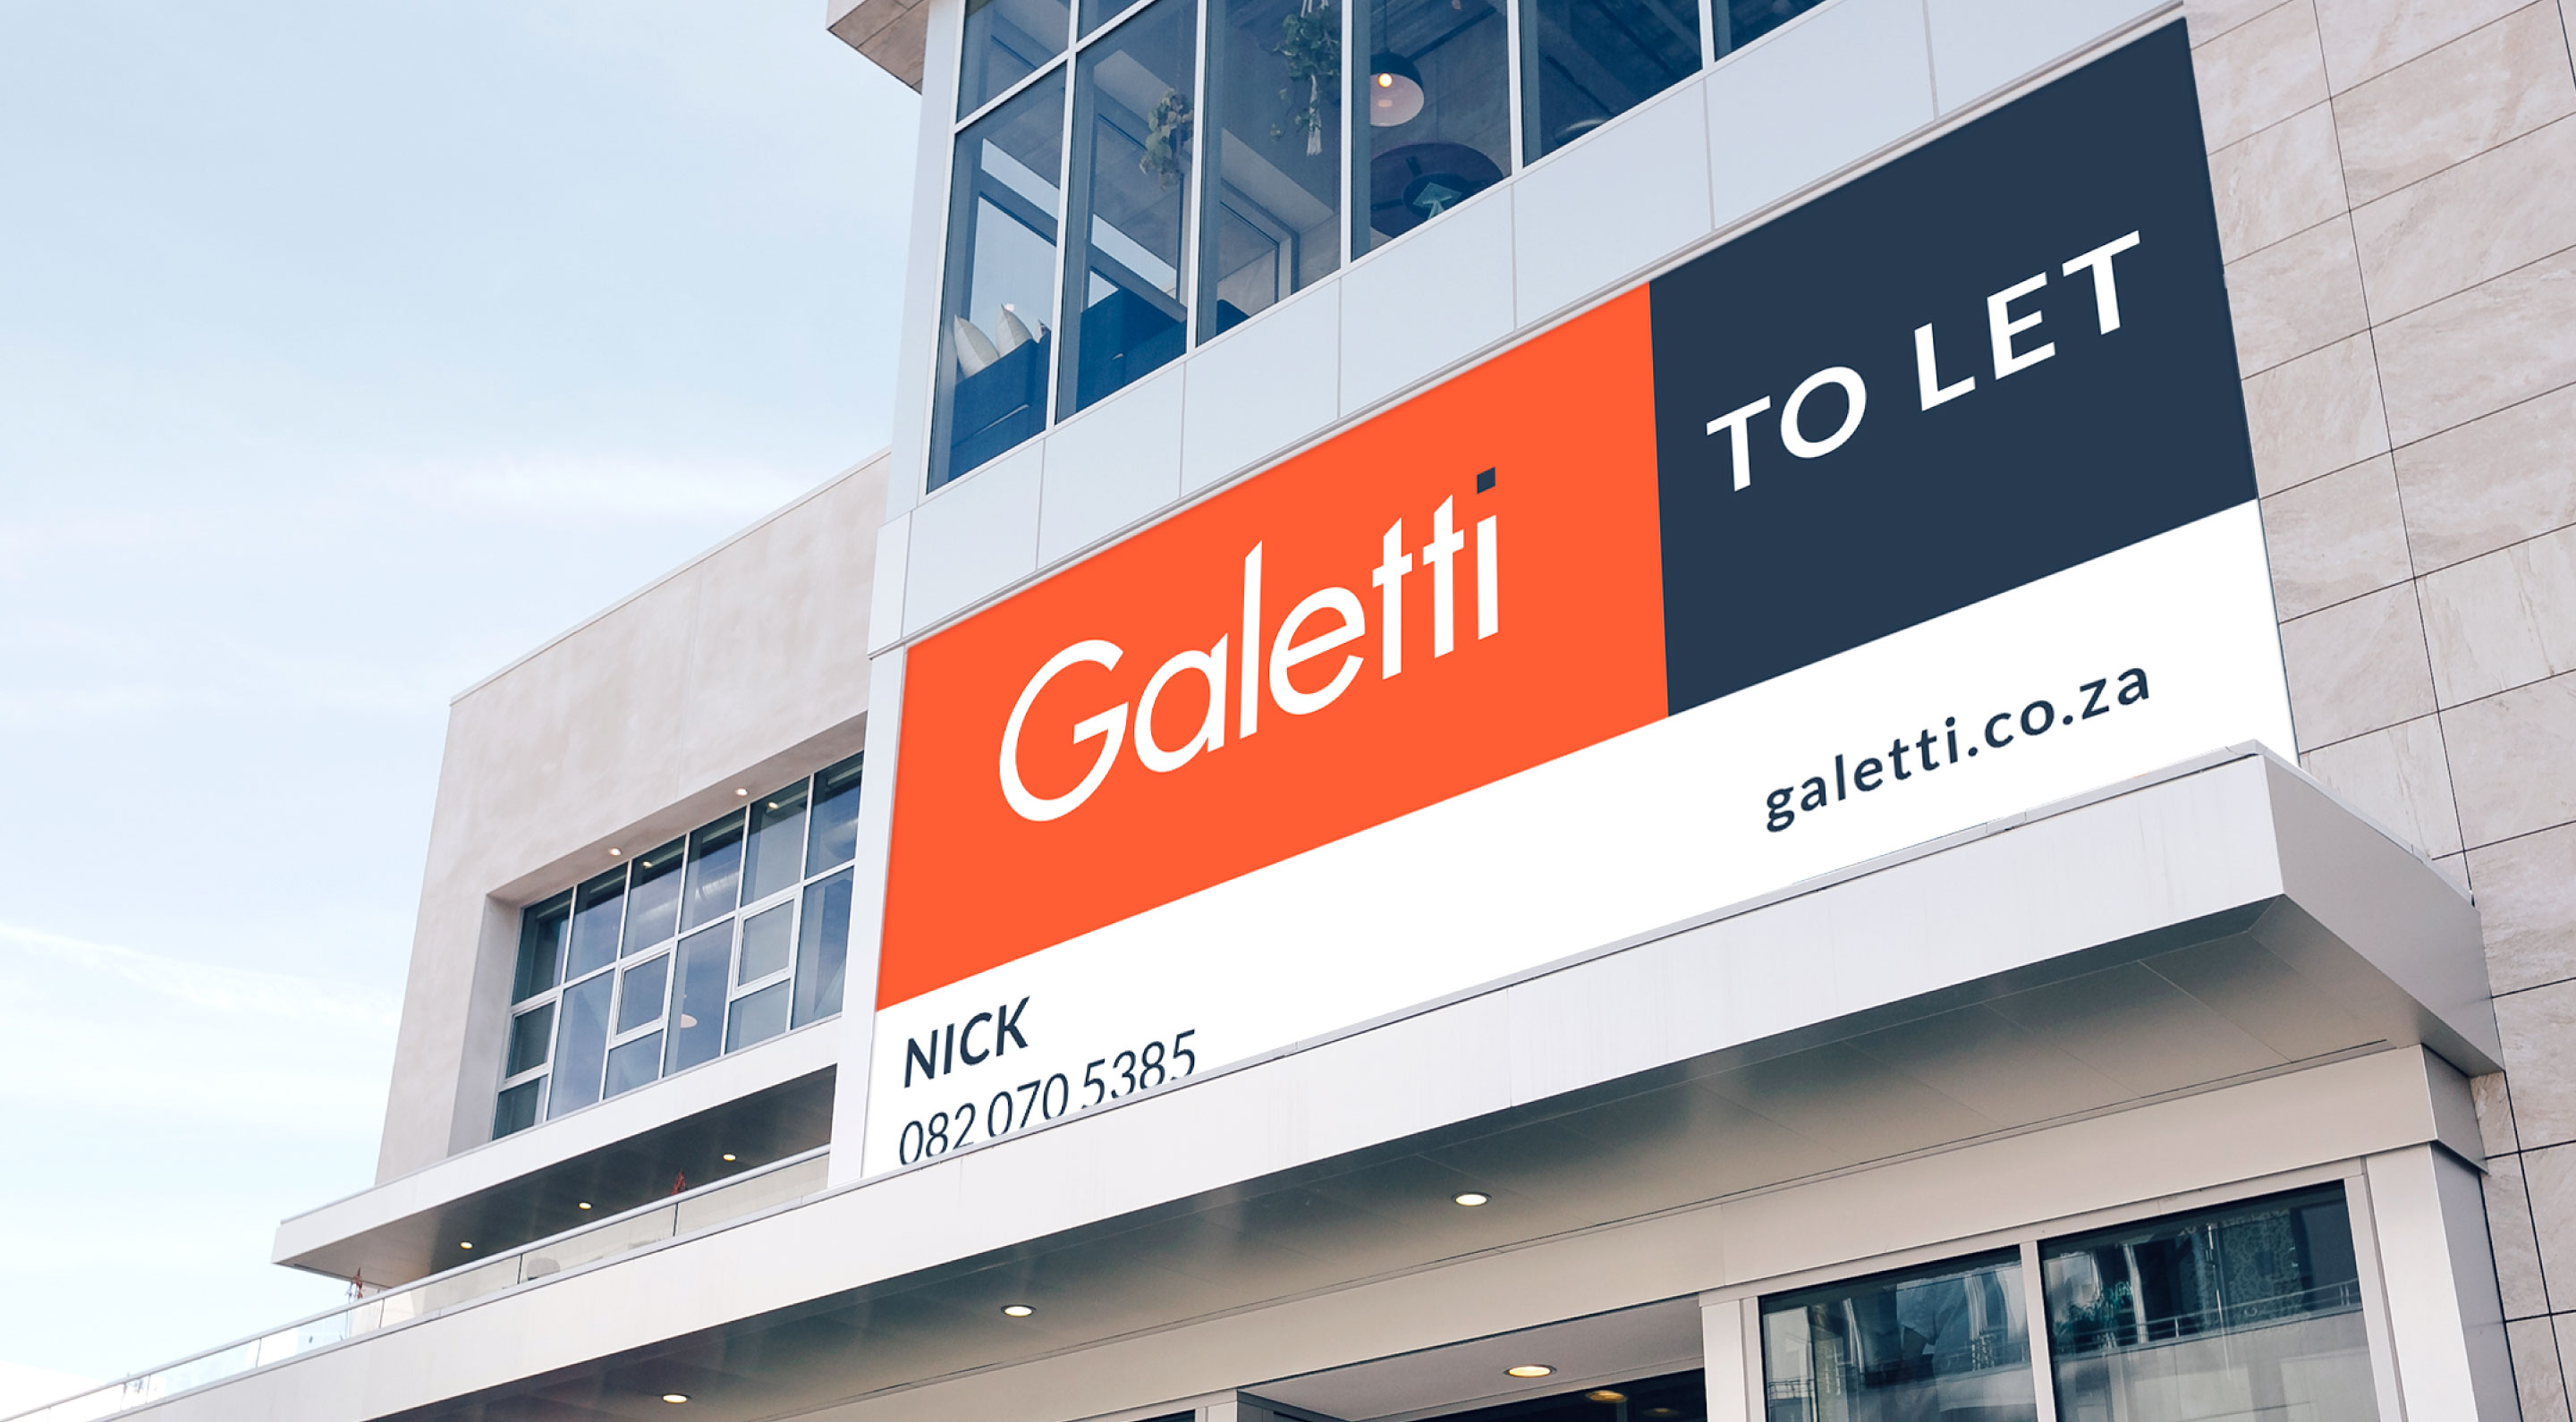 Galetti CRE corporate identity design 11